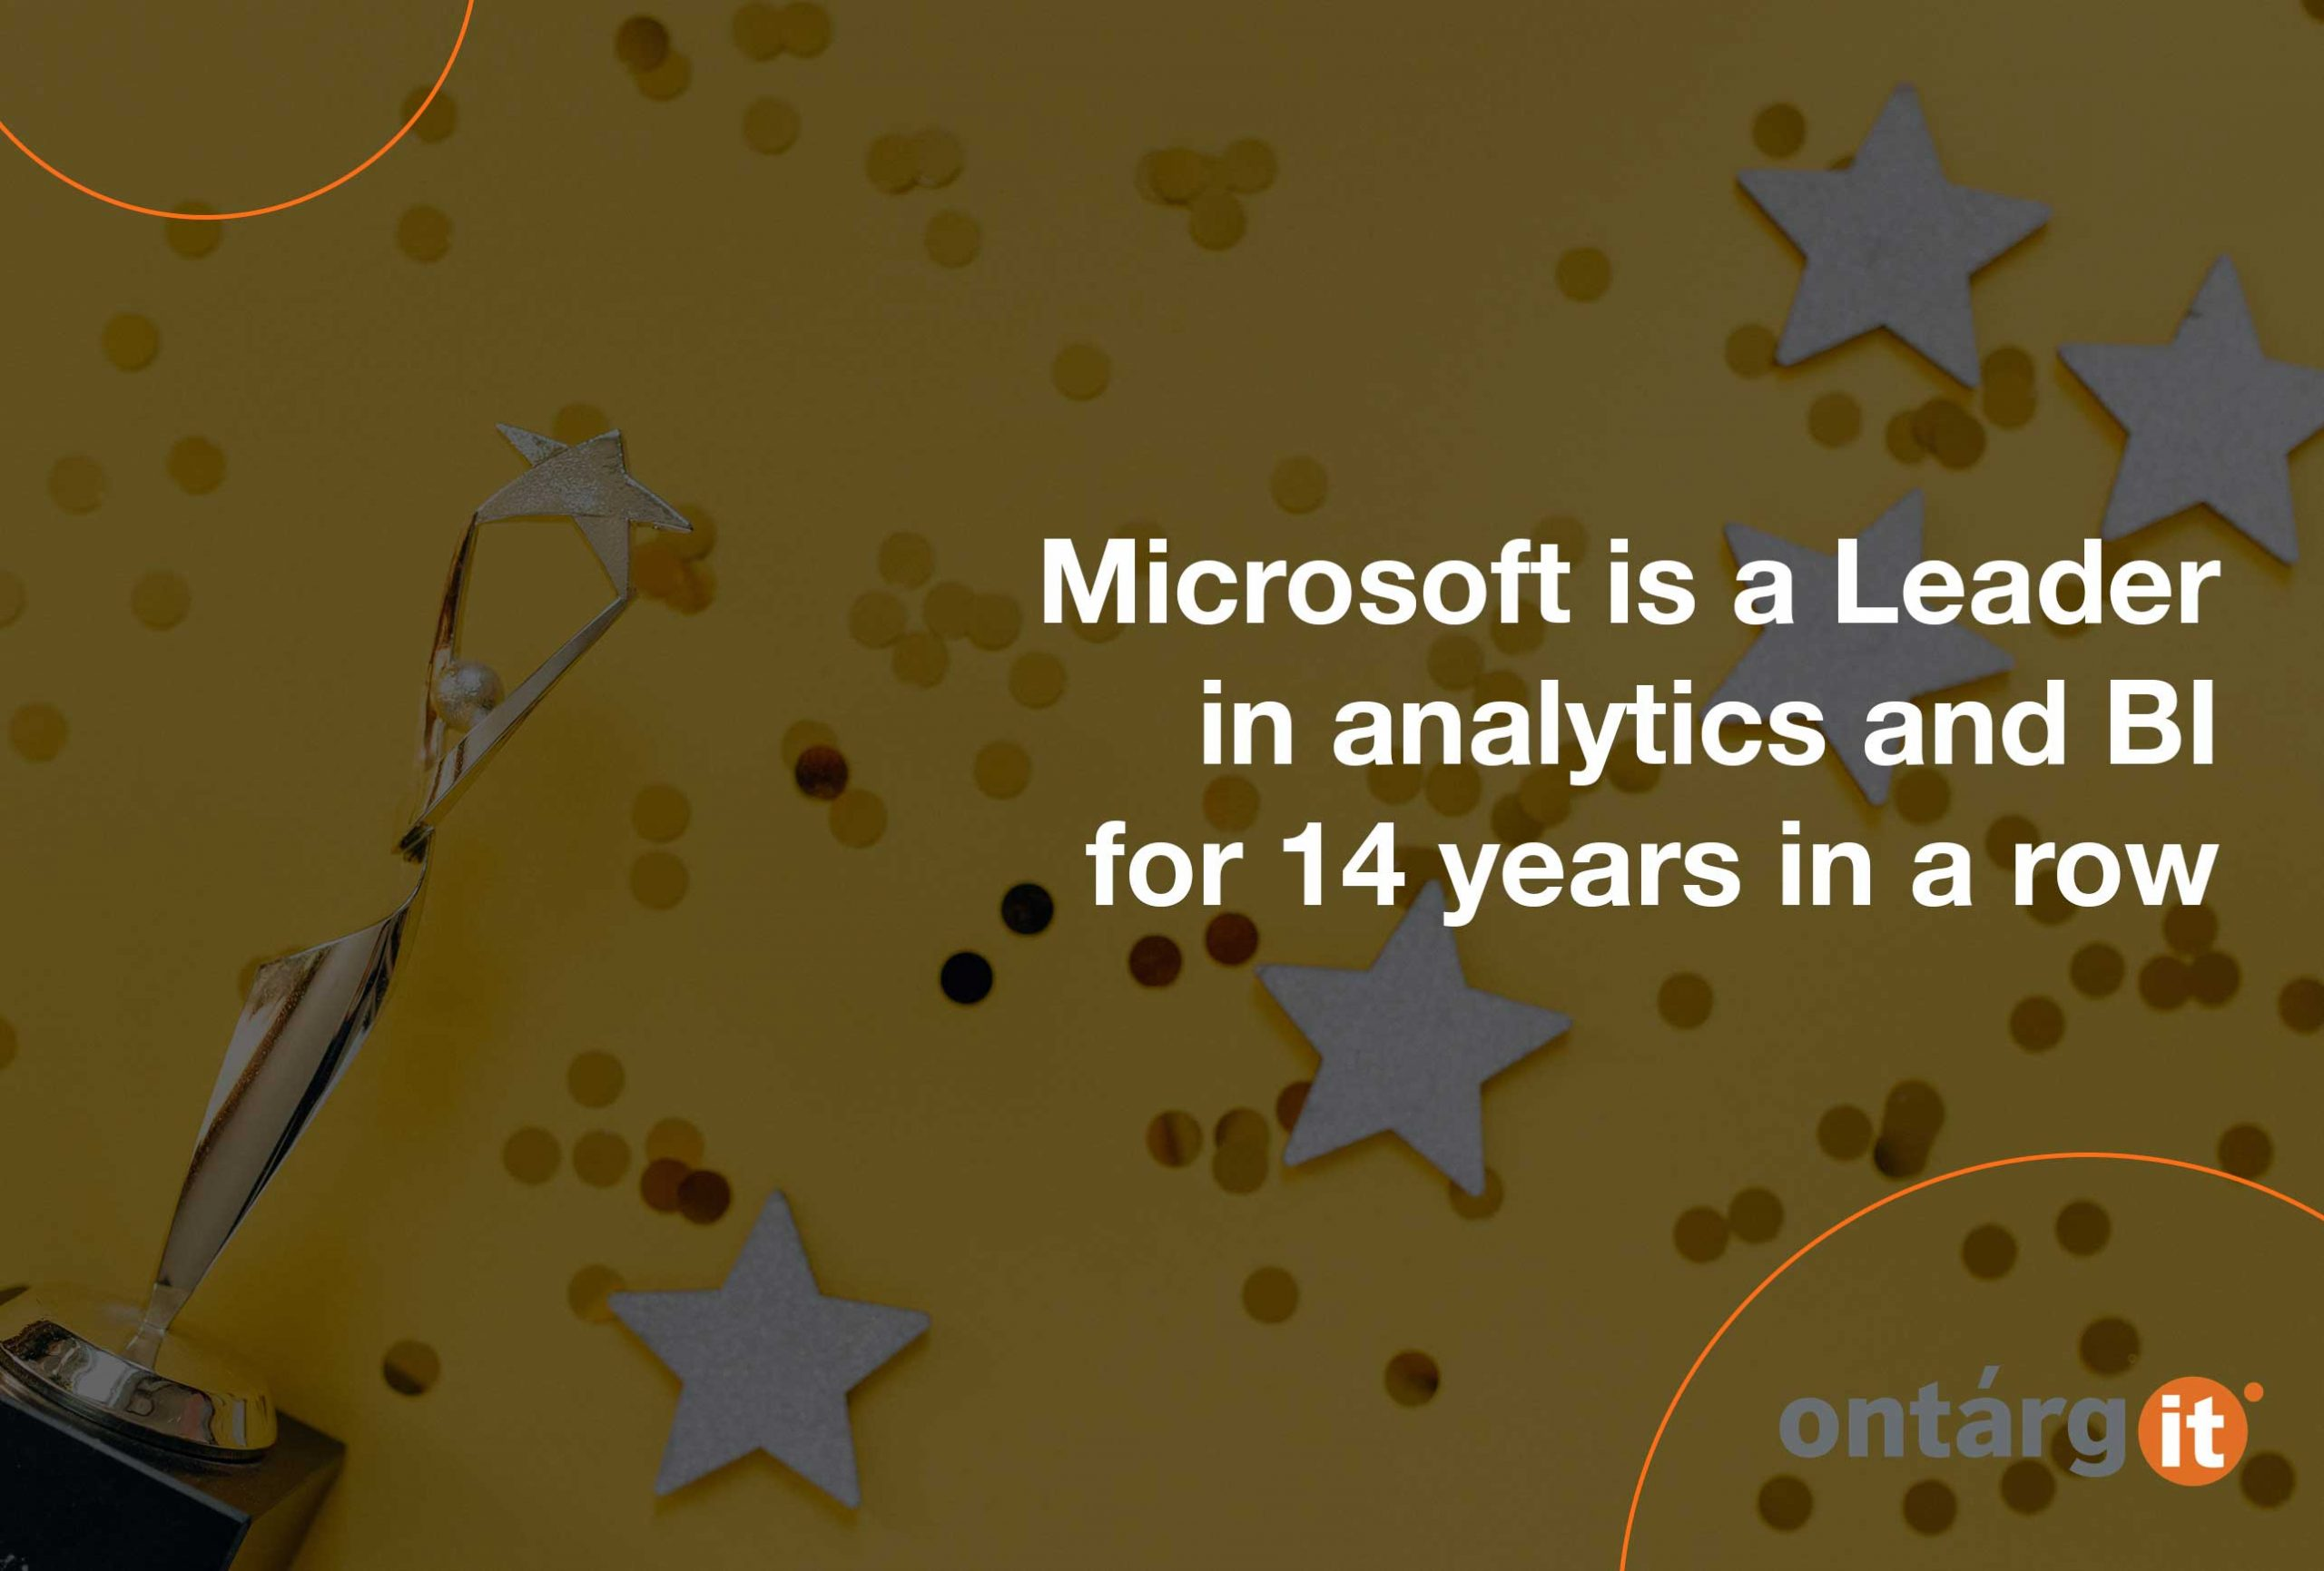 Microsoft-is-a-Leader-in-analytics-and-BI-for-14-years-in-a-row